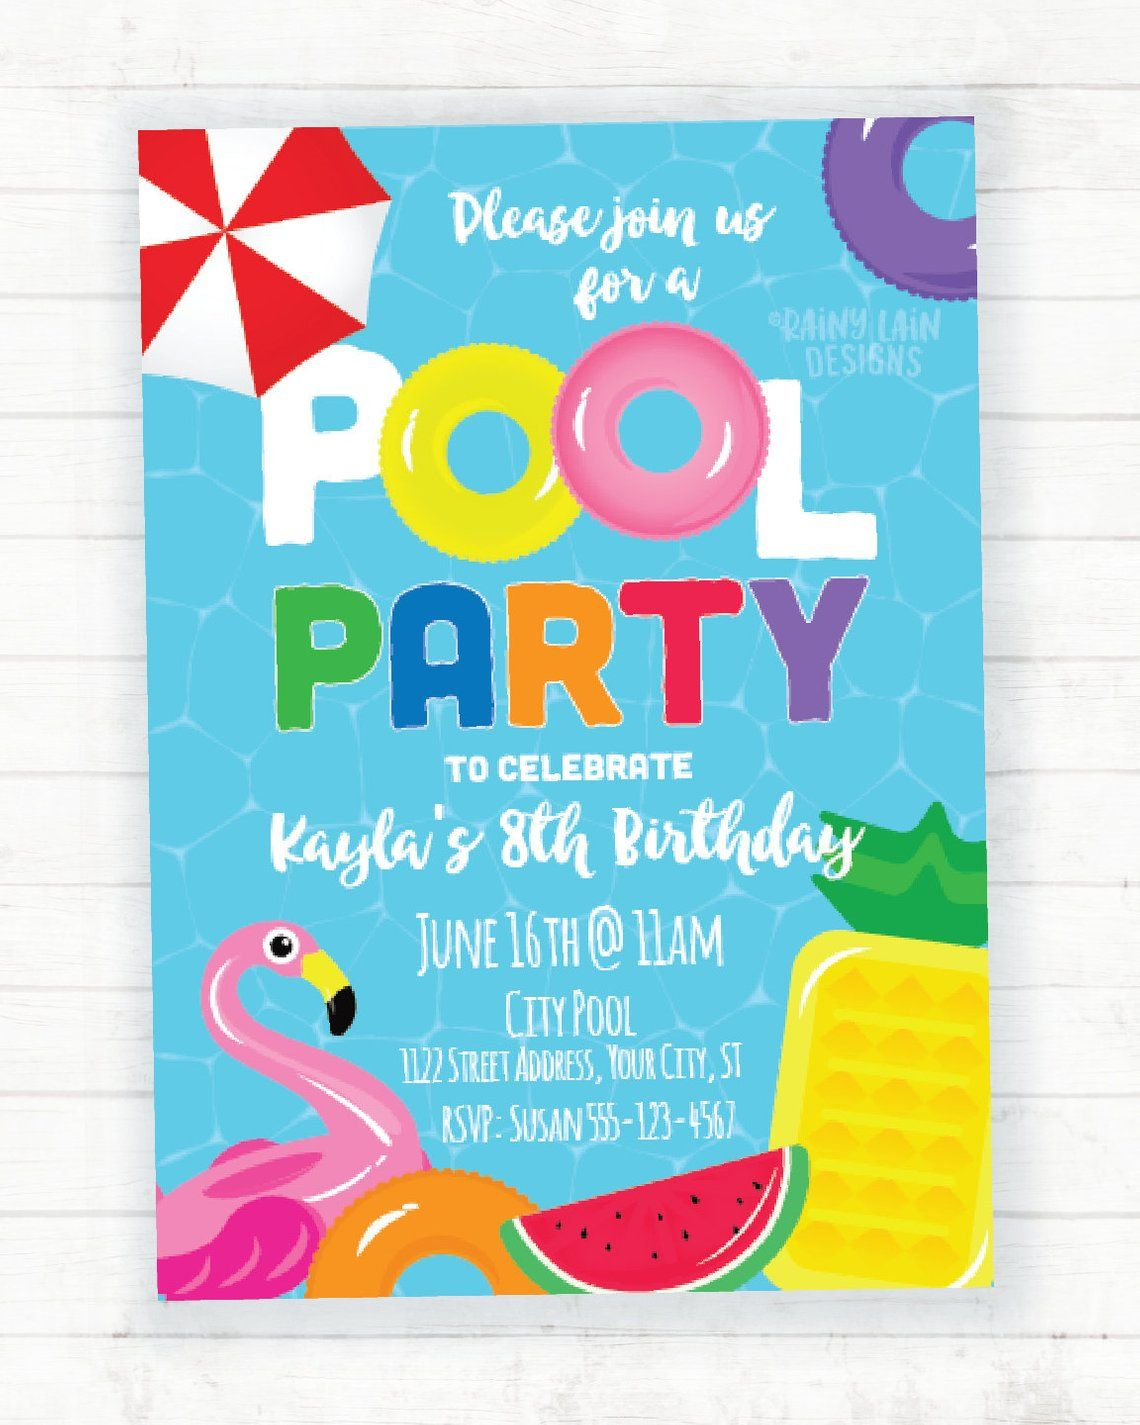 Pool Party Invitation Summer Birthday Party Invitation Pool Birthday Party Invit Summer Birthday Party Invitations Pool Birthday Party Pool Party Invitations